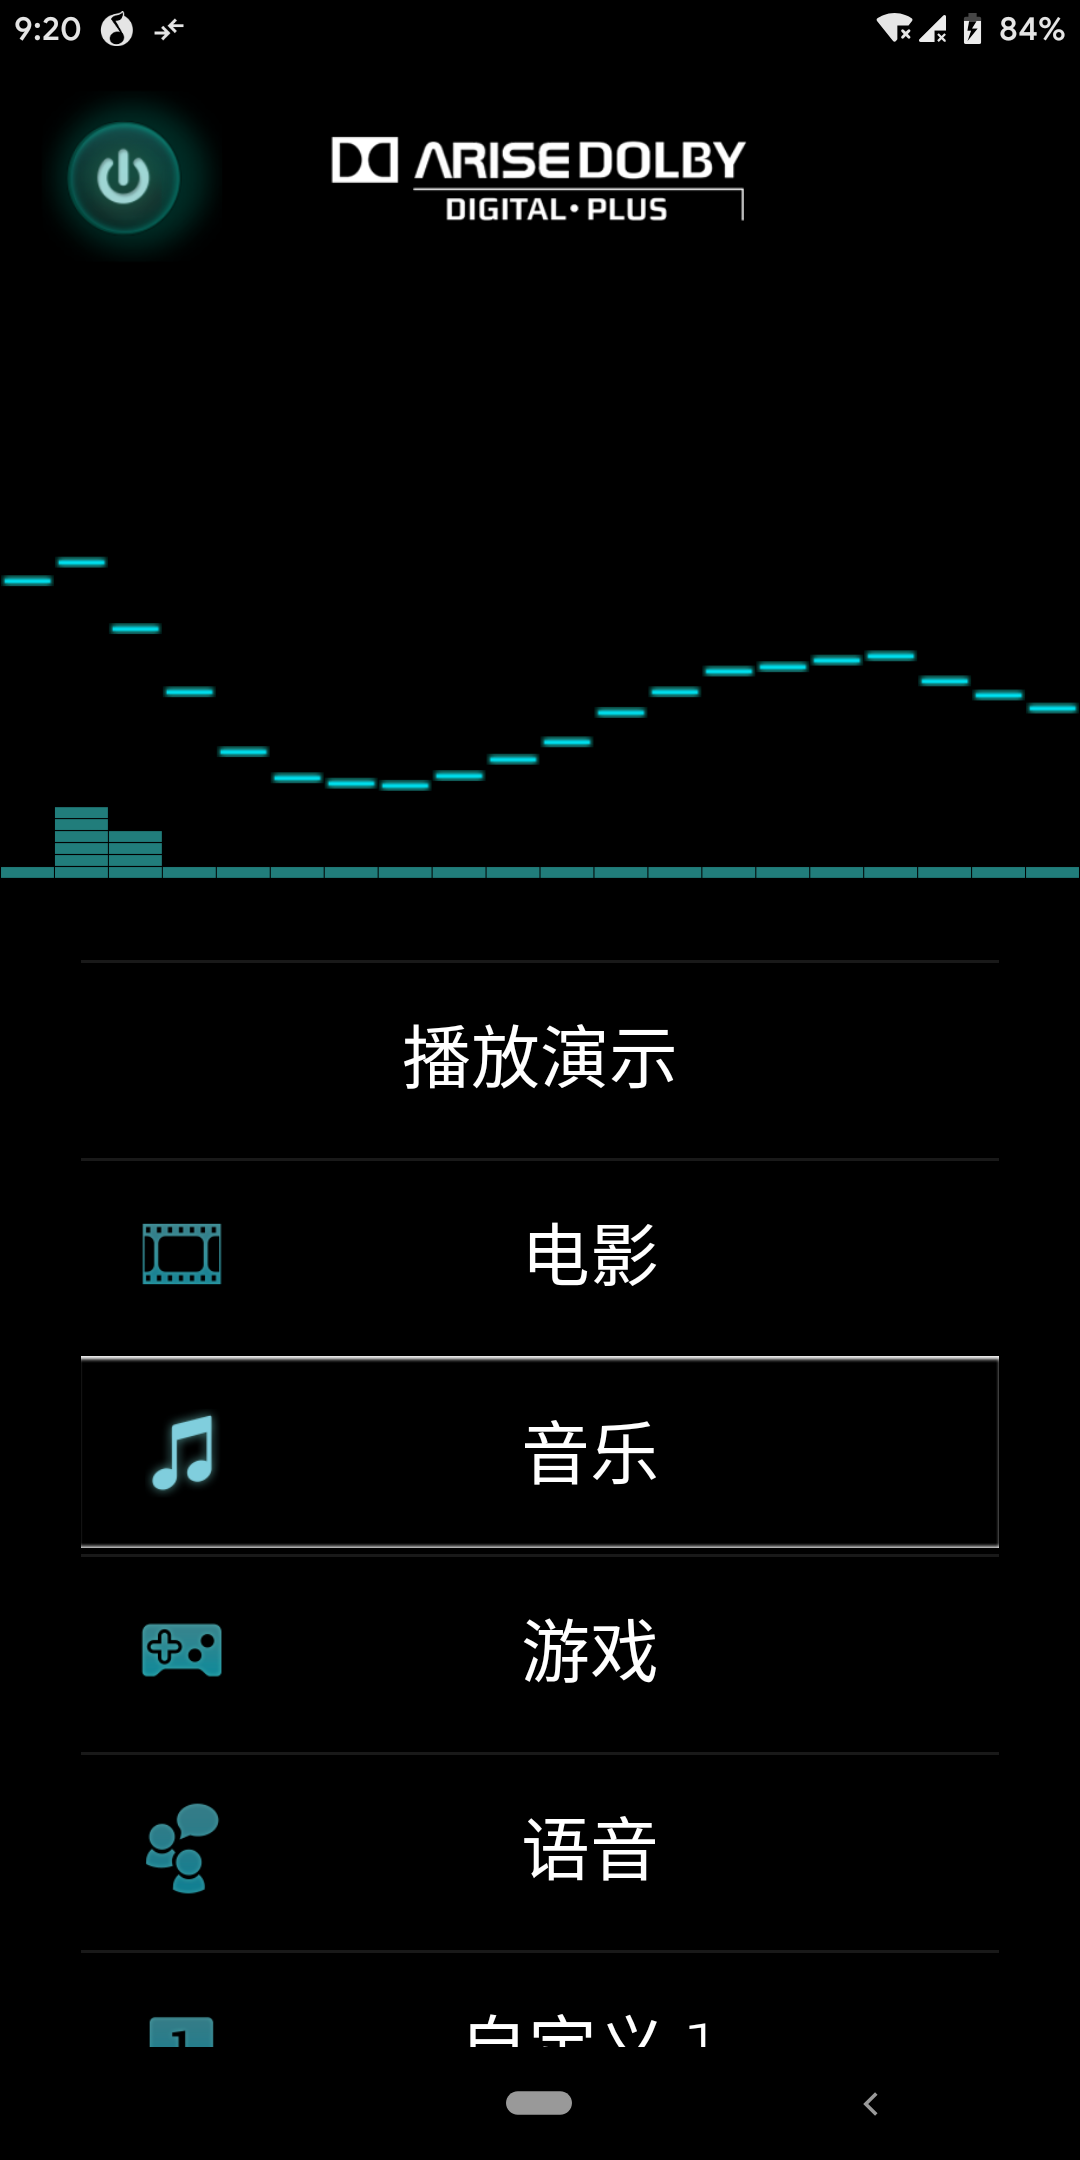 Screenshot_20181115-212042_Dolby.png